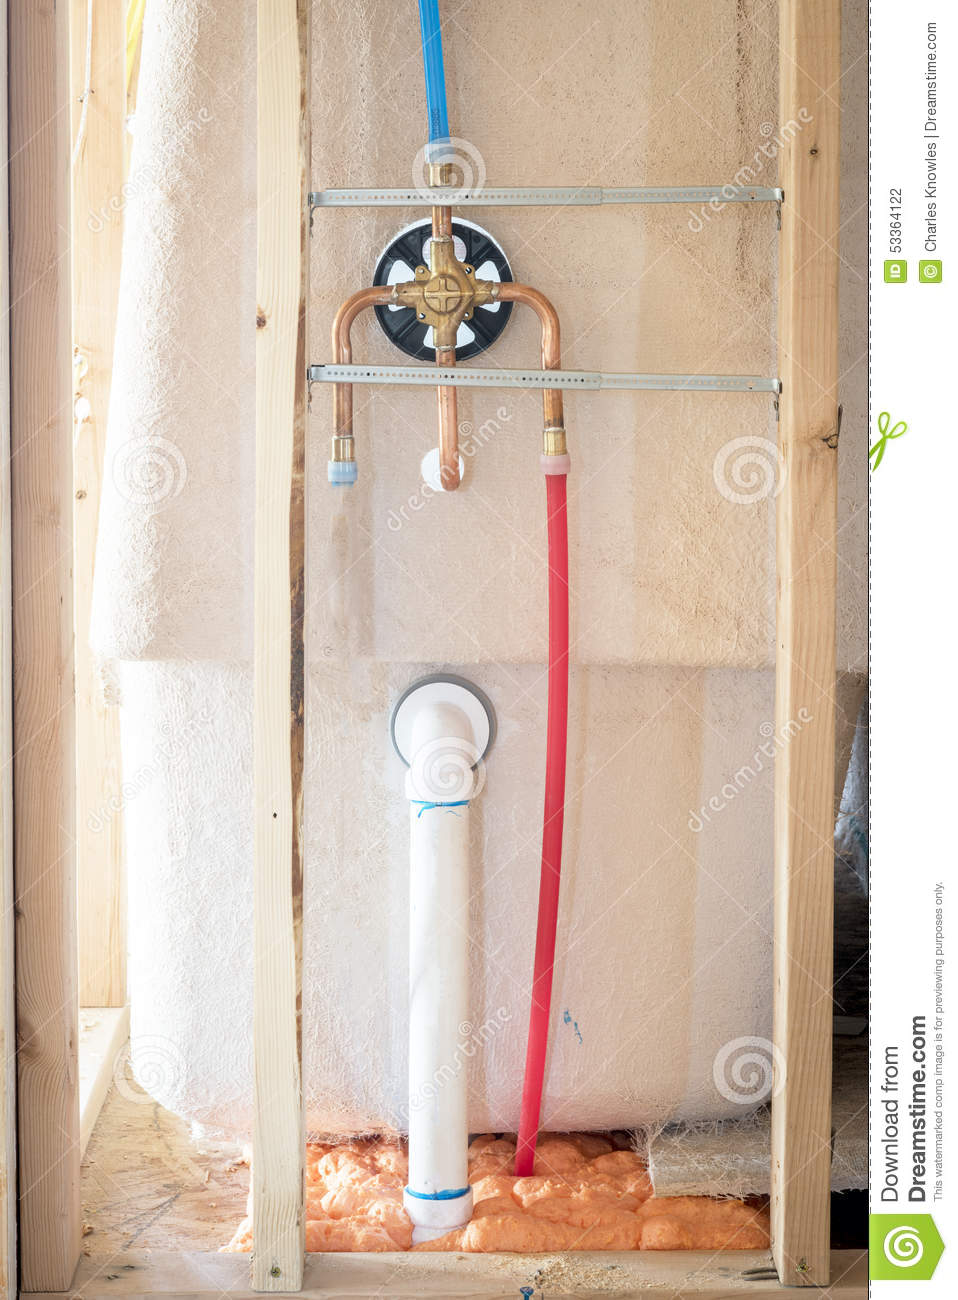 New home construction shower details stock photo image for Plumbing a new house